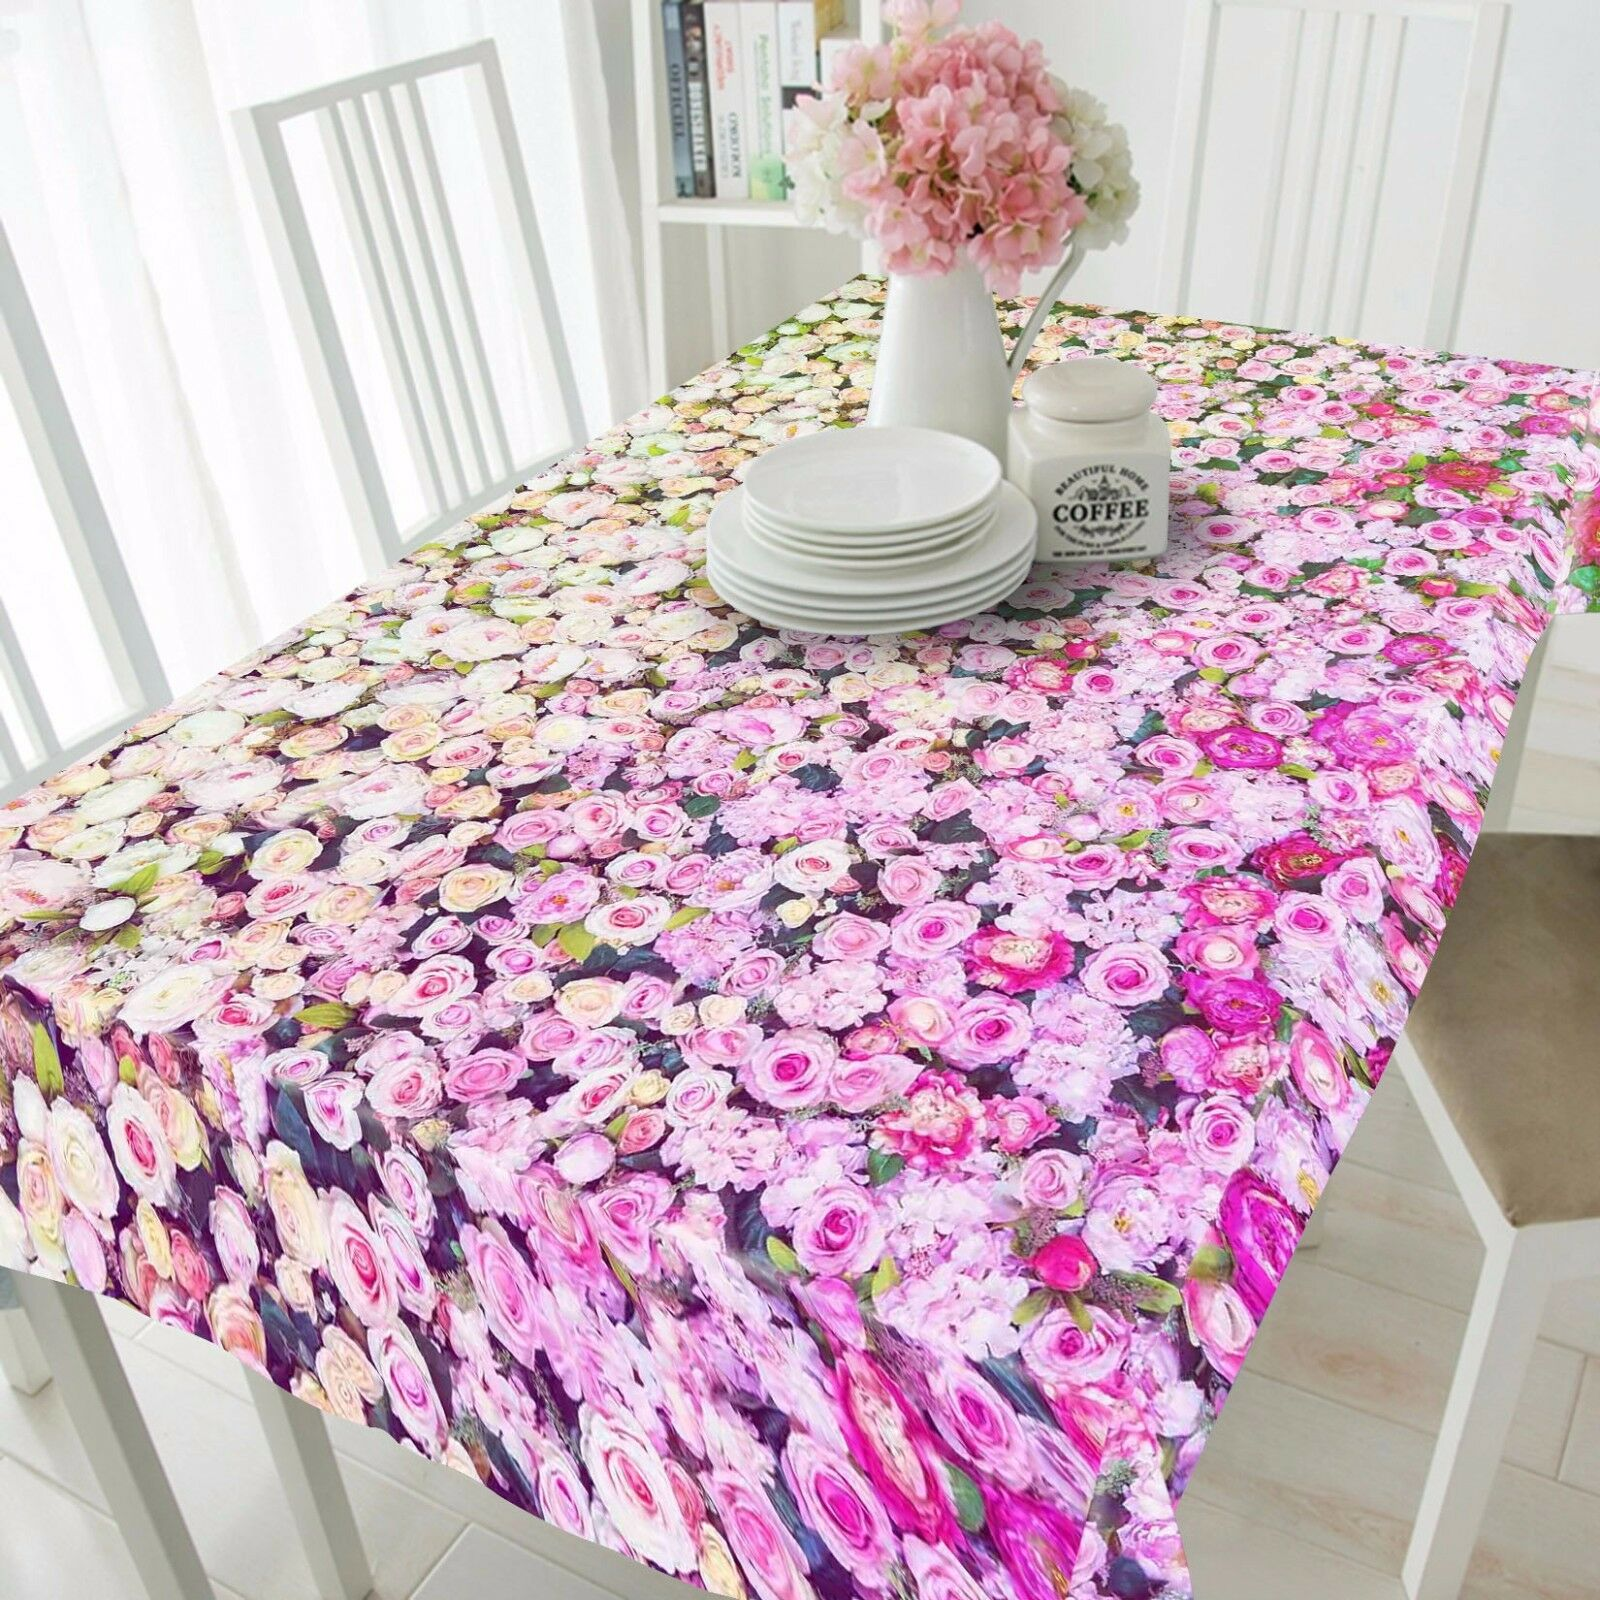 3D Flowers Wall 5 Tablecloth Table Cover Cloth Birthday Party Event AJ WALLPAPER